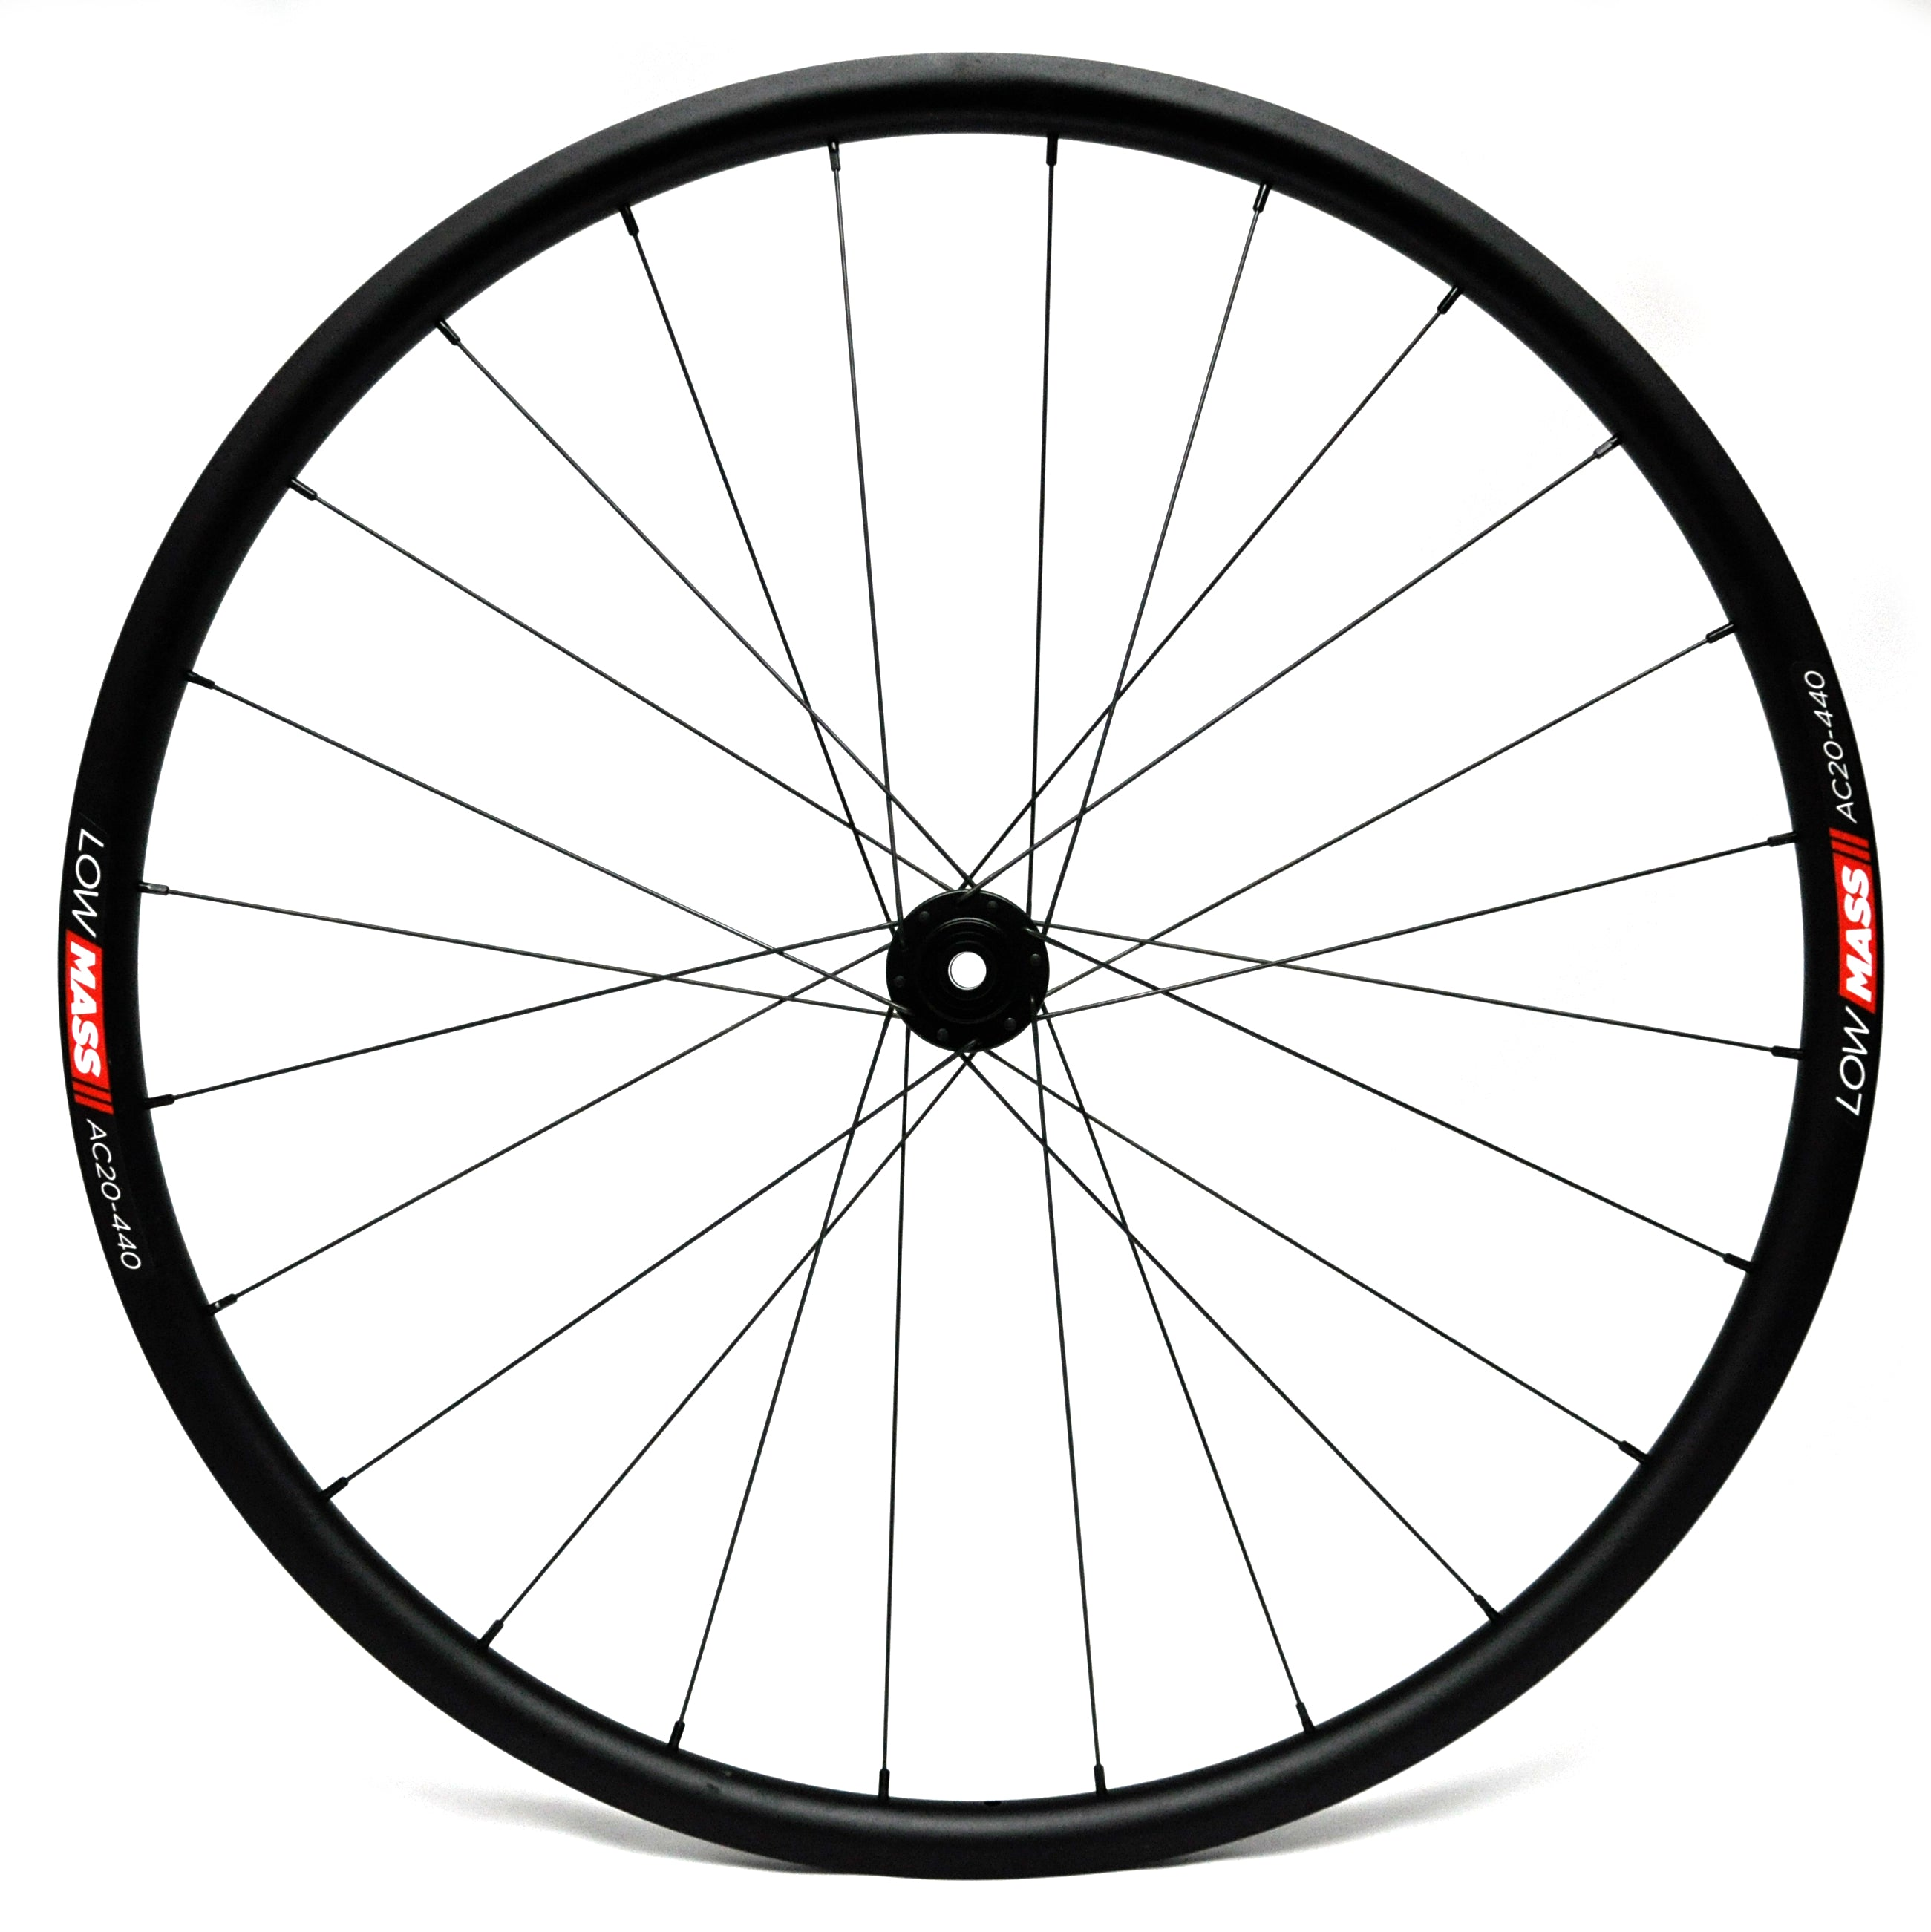 LOWMASS Multi-Purpose Aluminium Tubeless Disc Wheelset